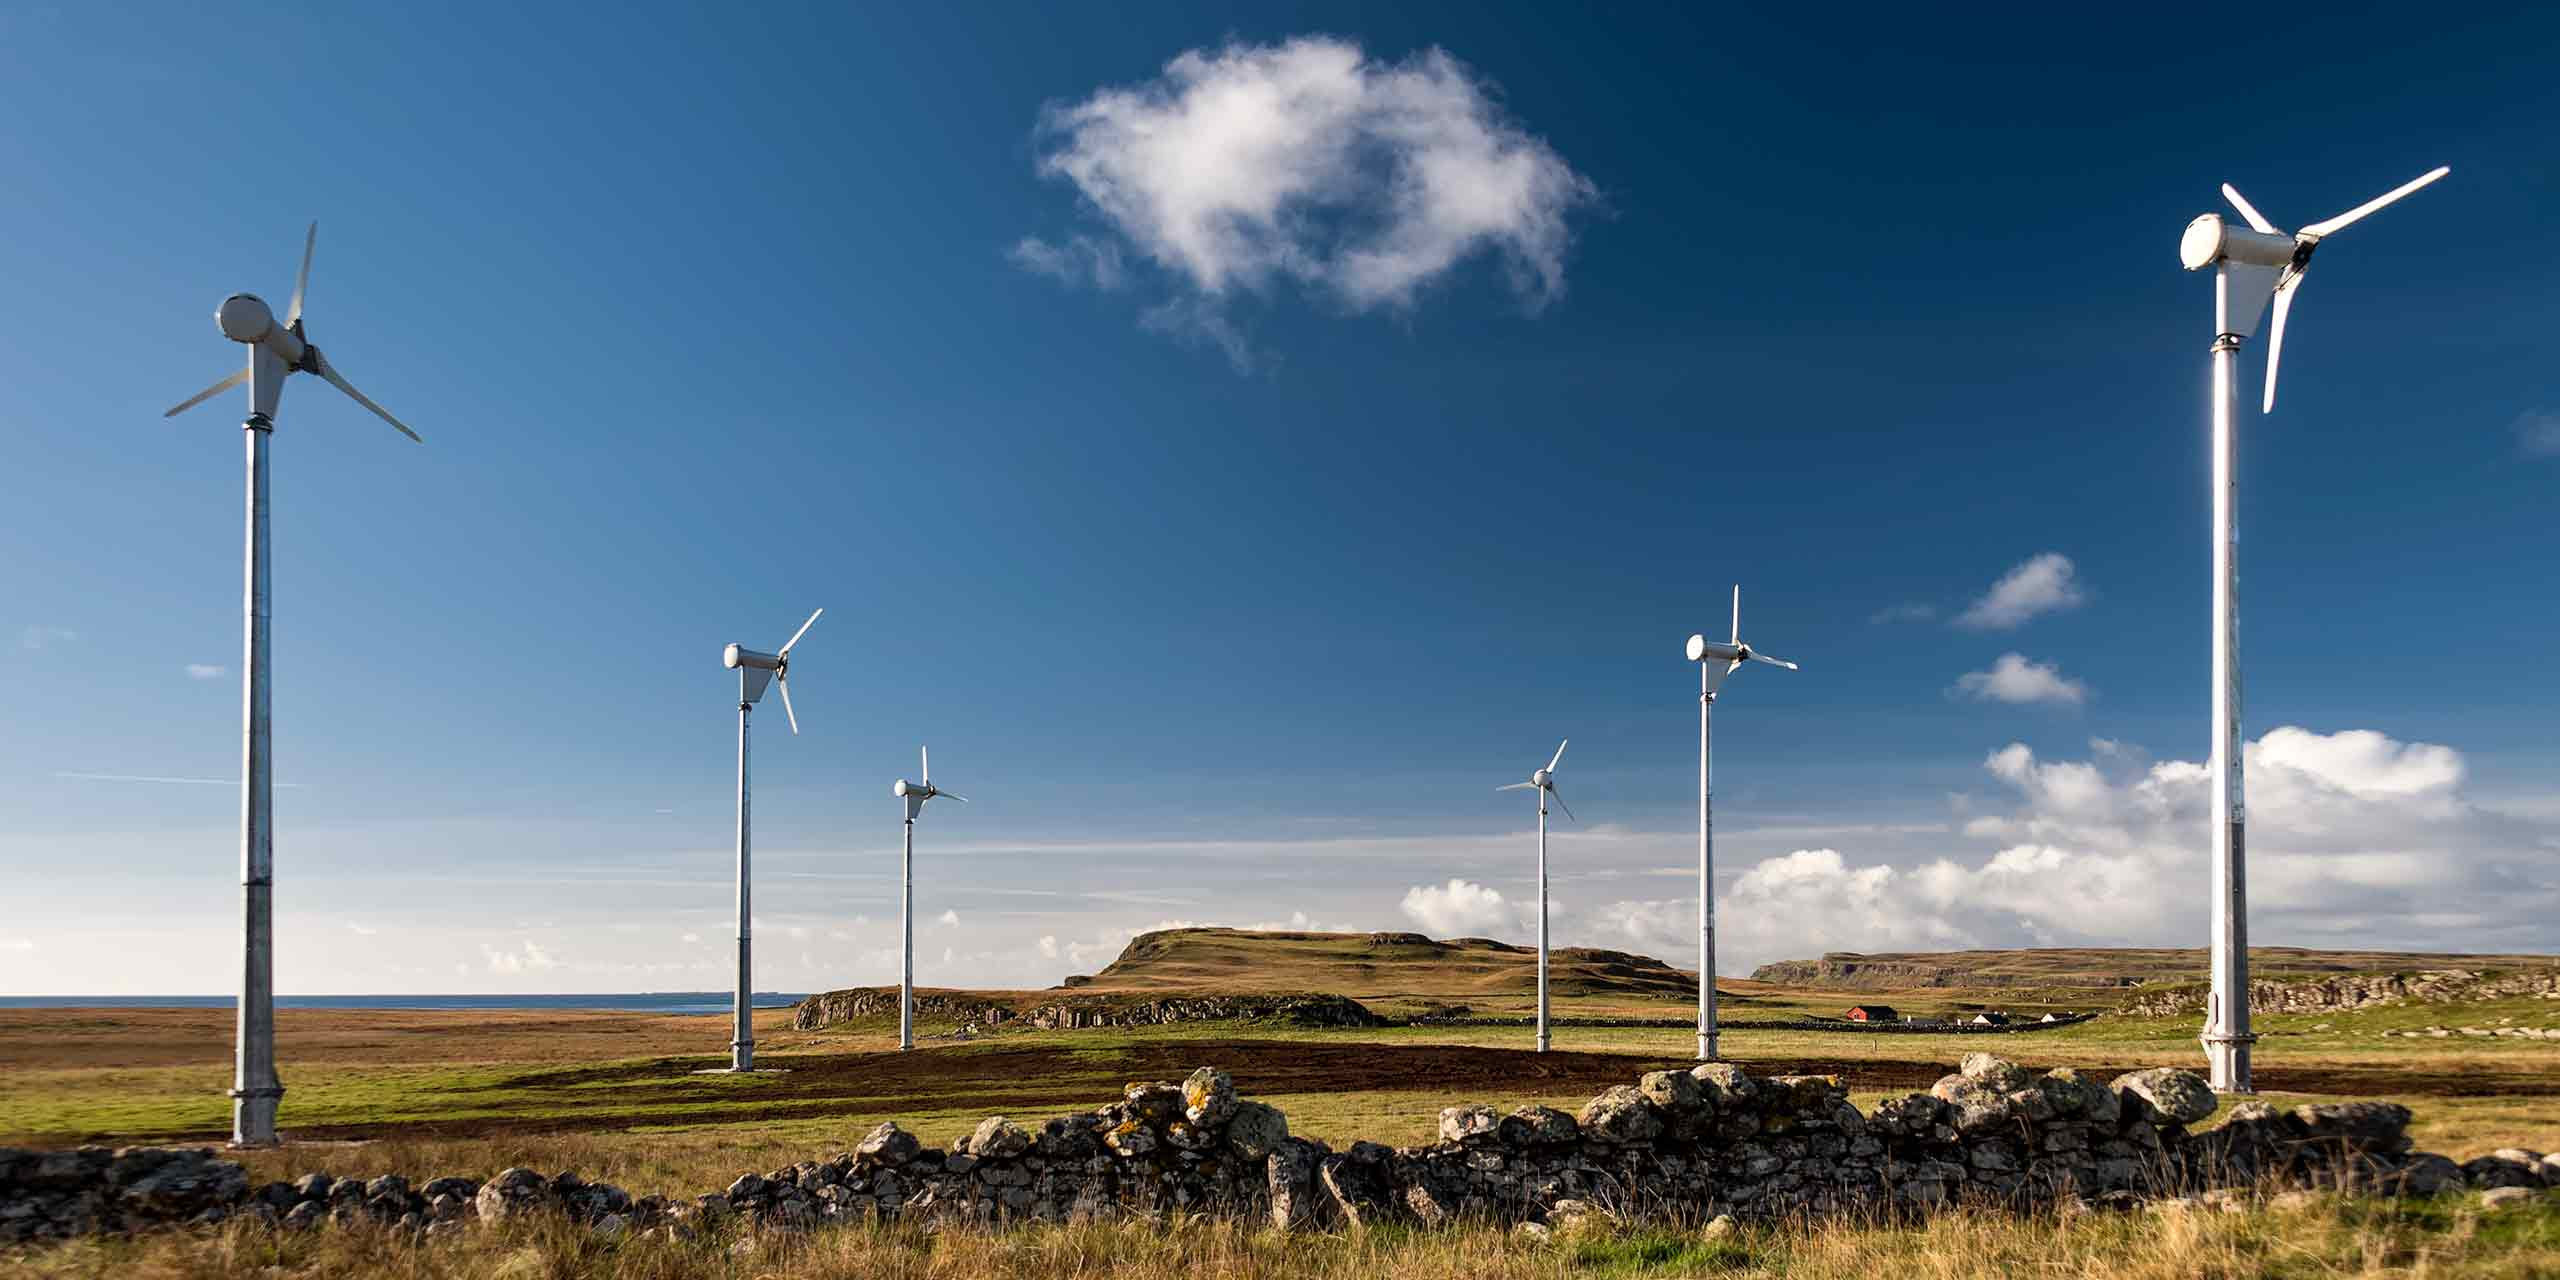 The small wind turbine of choice